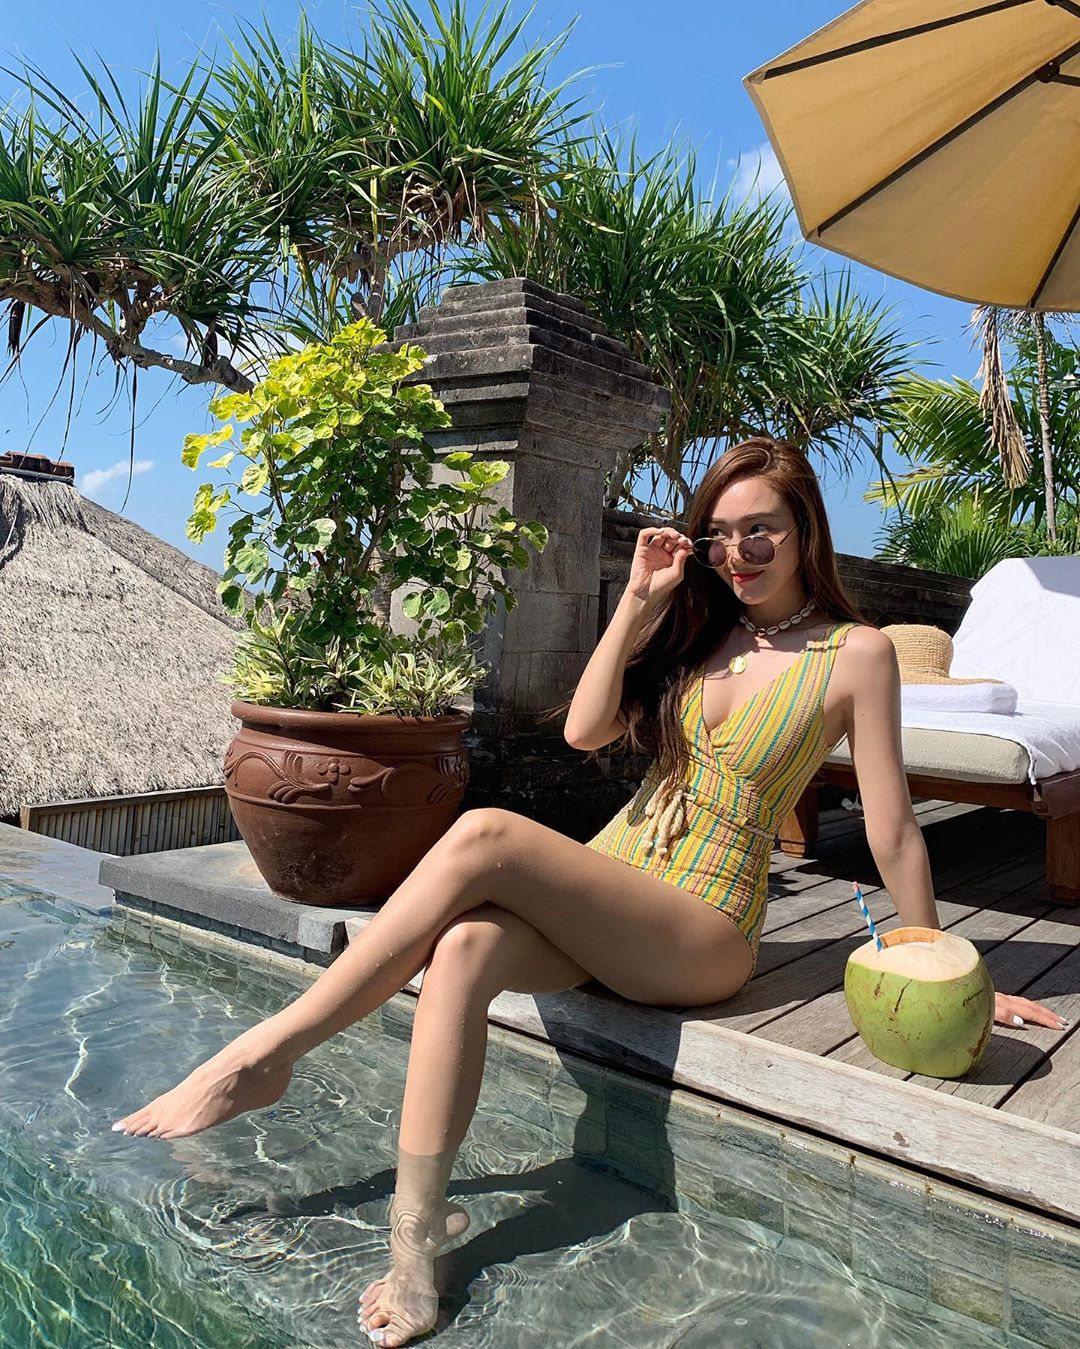 Jessica Shows Sexy Photos With Swimsuit When Vacationing -2197